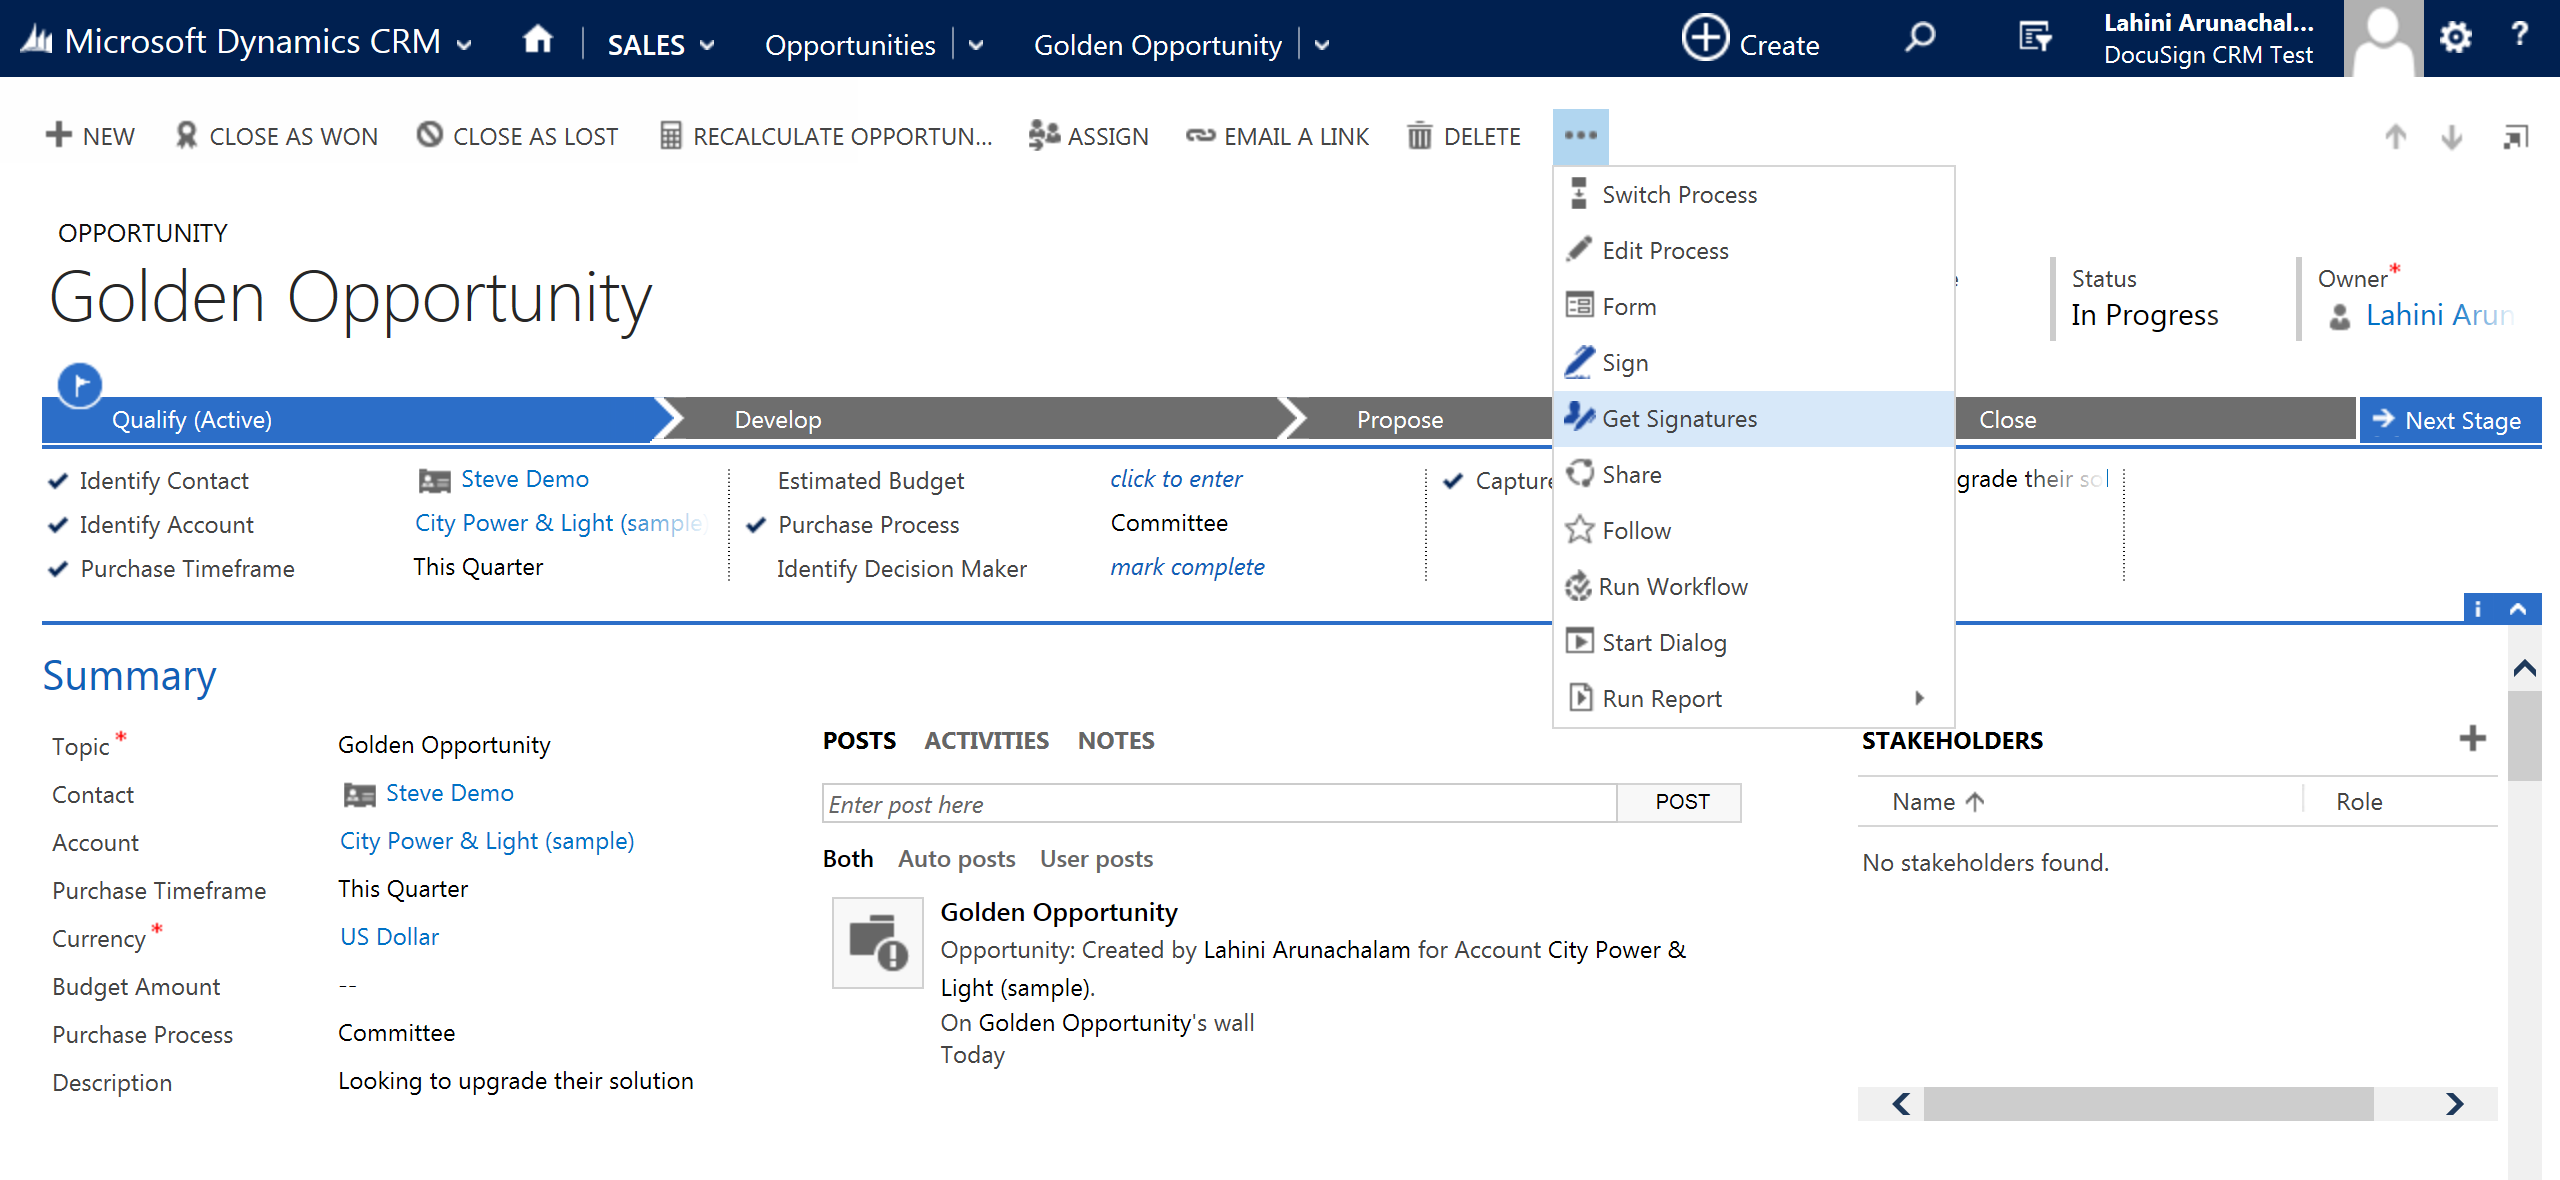 DocuSign_Microsoft_Dynamics_Online_Entity_Send.png